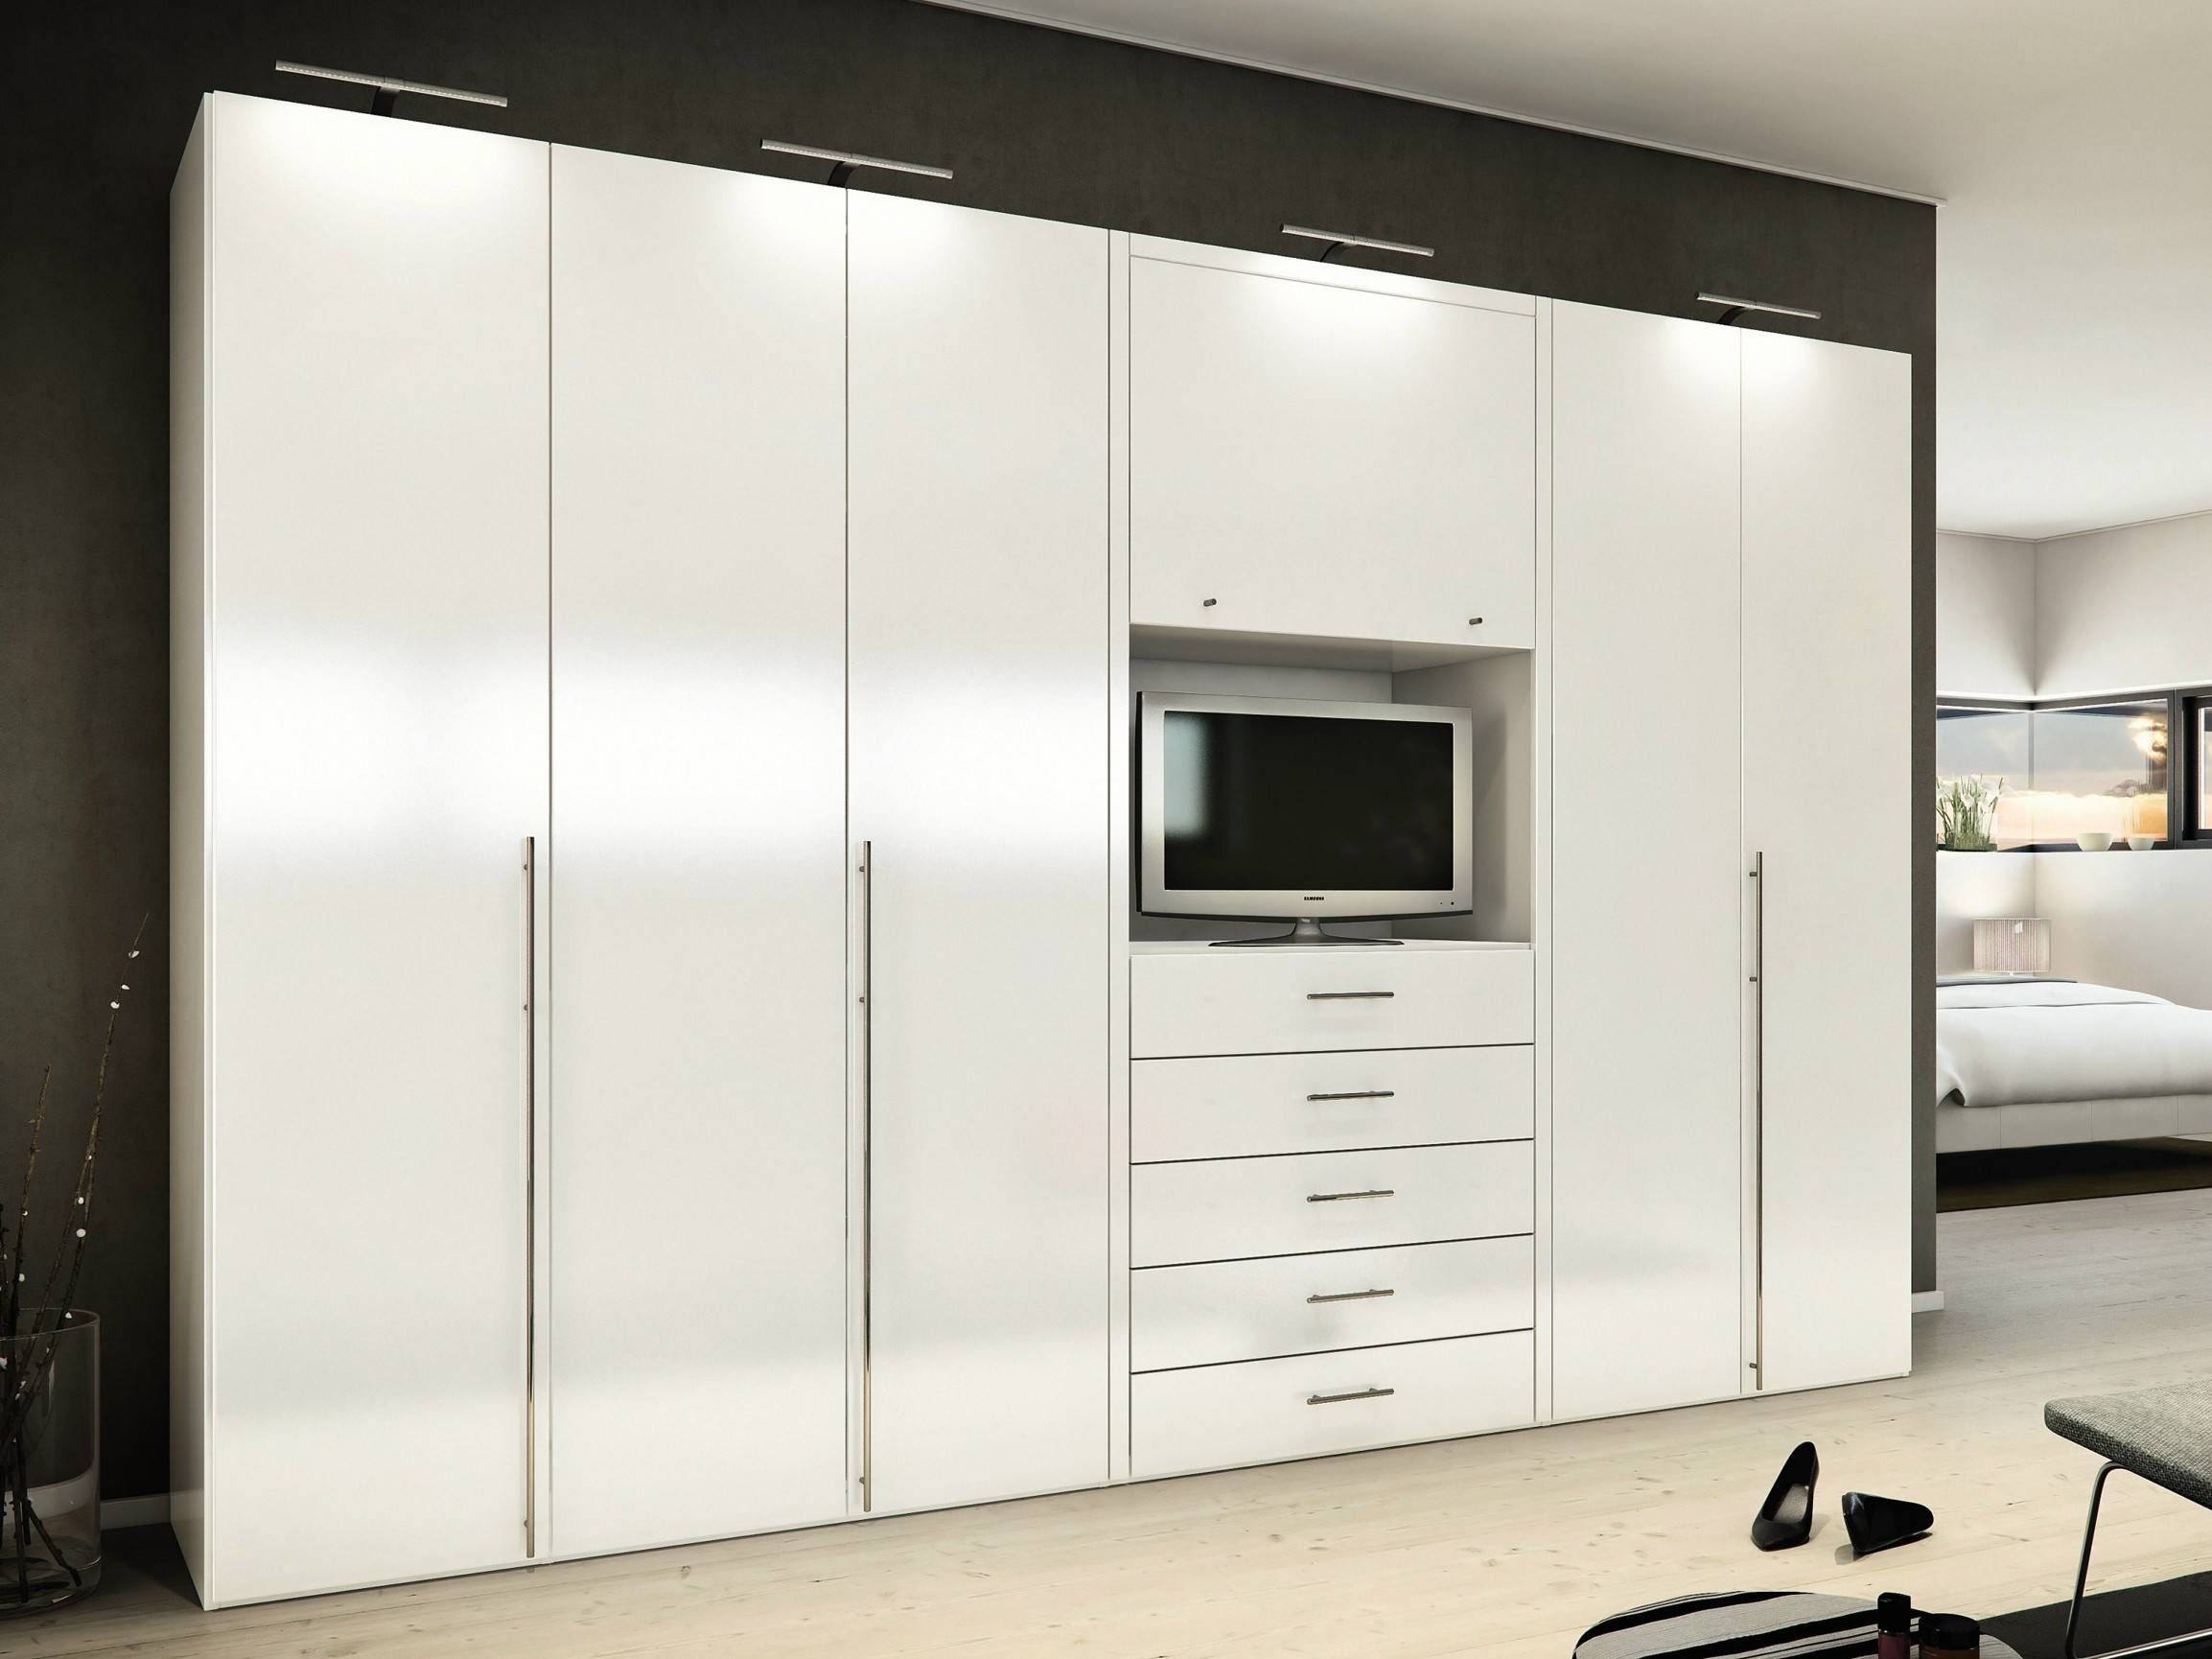 Black Stained Solid Wood Wardrobe Having Open Shelf And Drawers Throughout Black Wood Wardrobes (View 6 of 15)